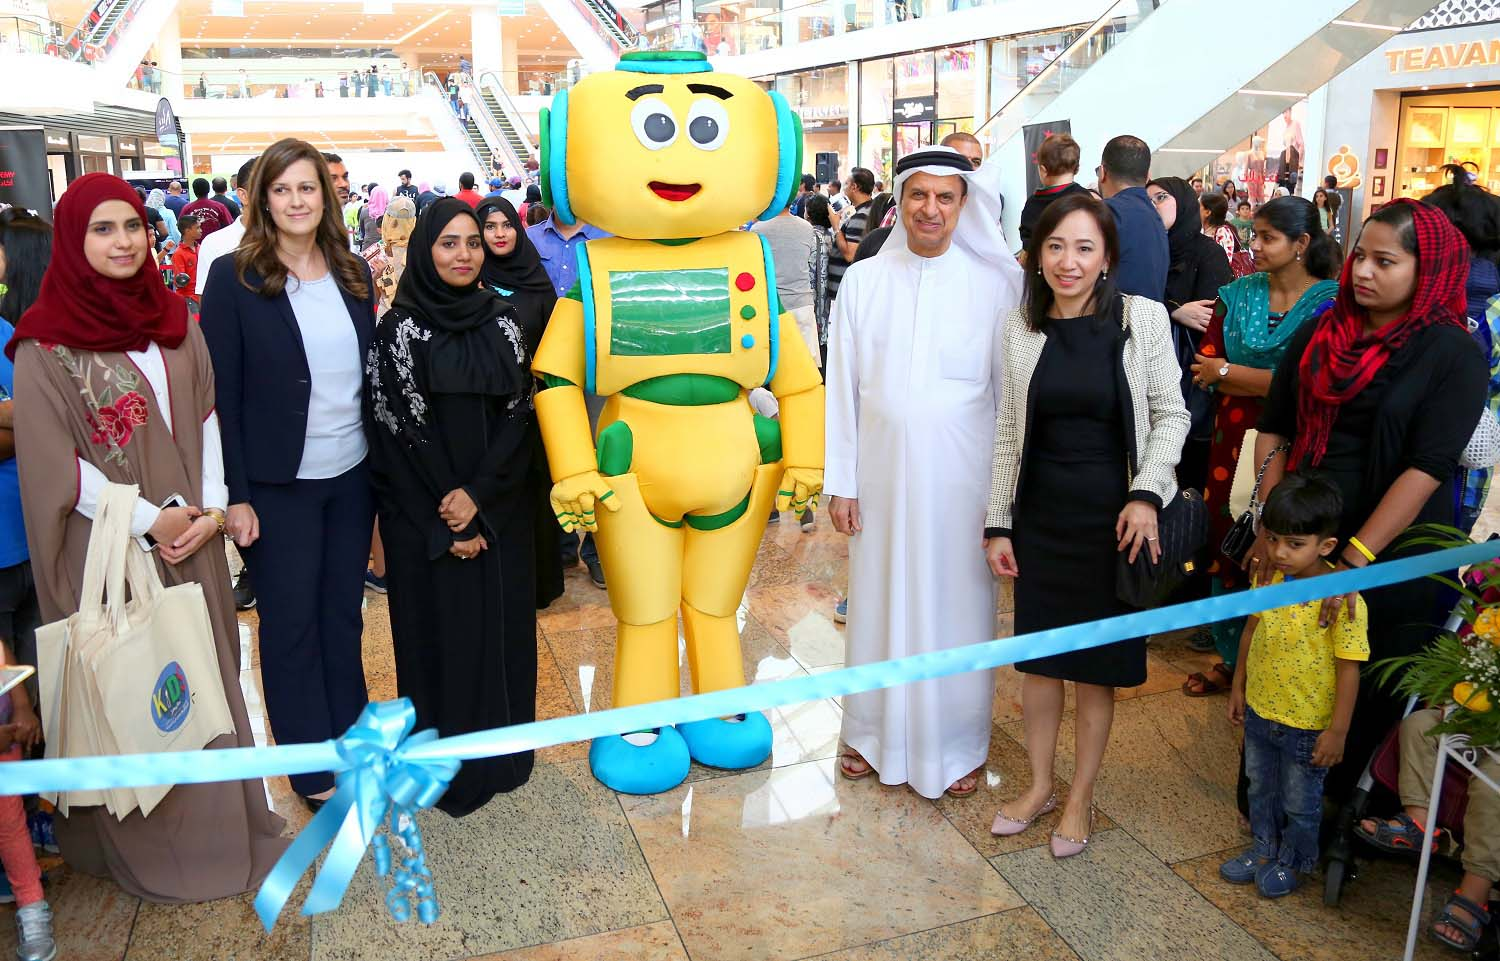 Ministry of Health and Prevention Launches 'Kids' Community Program to Increase Children's Knowledge on Diabetes